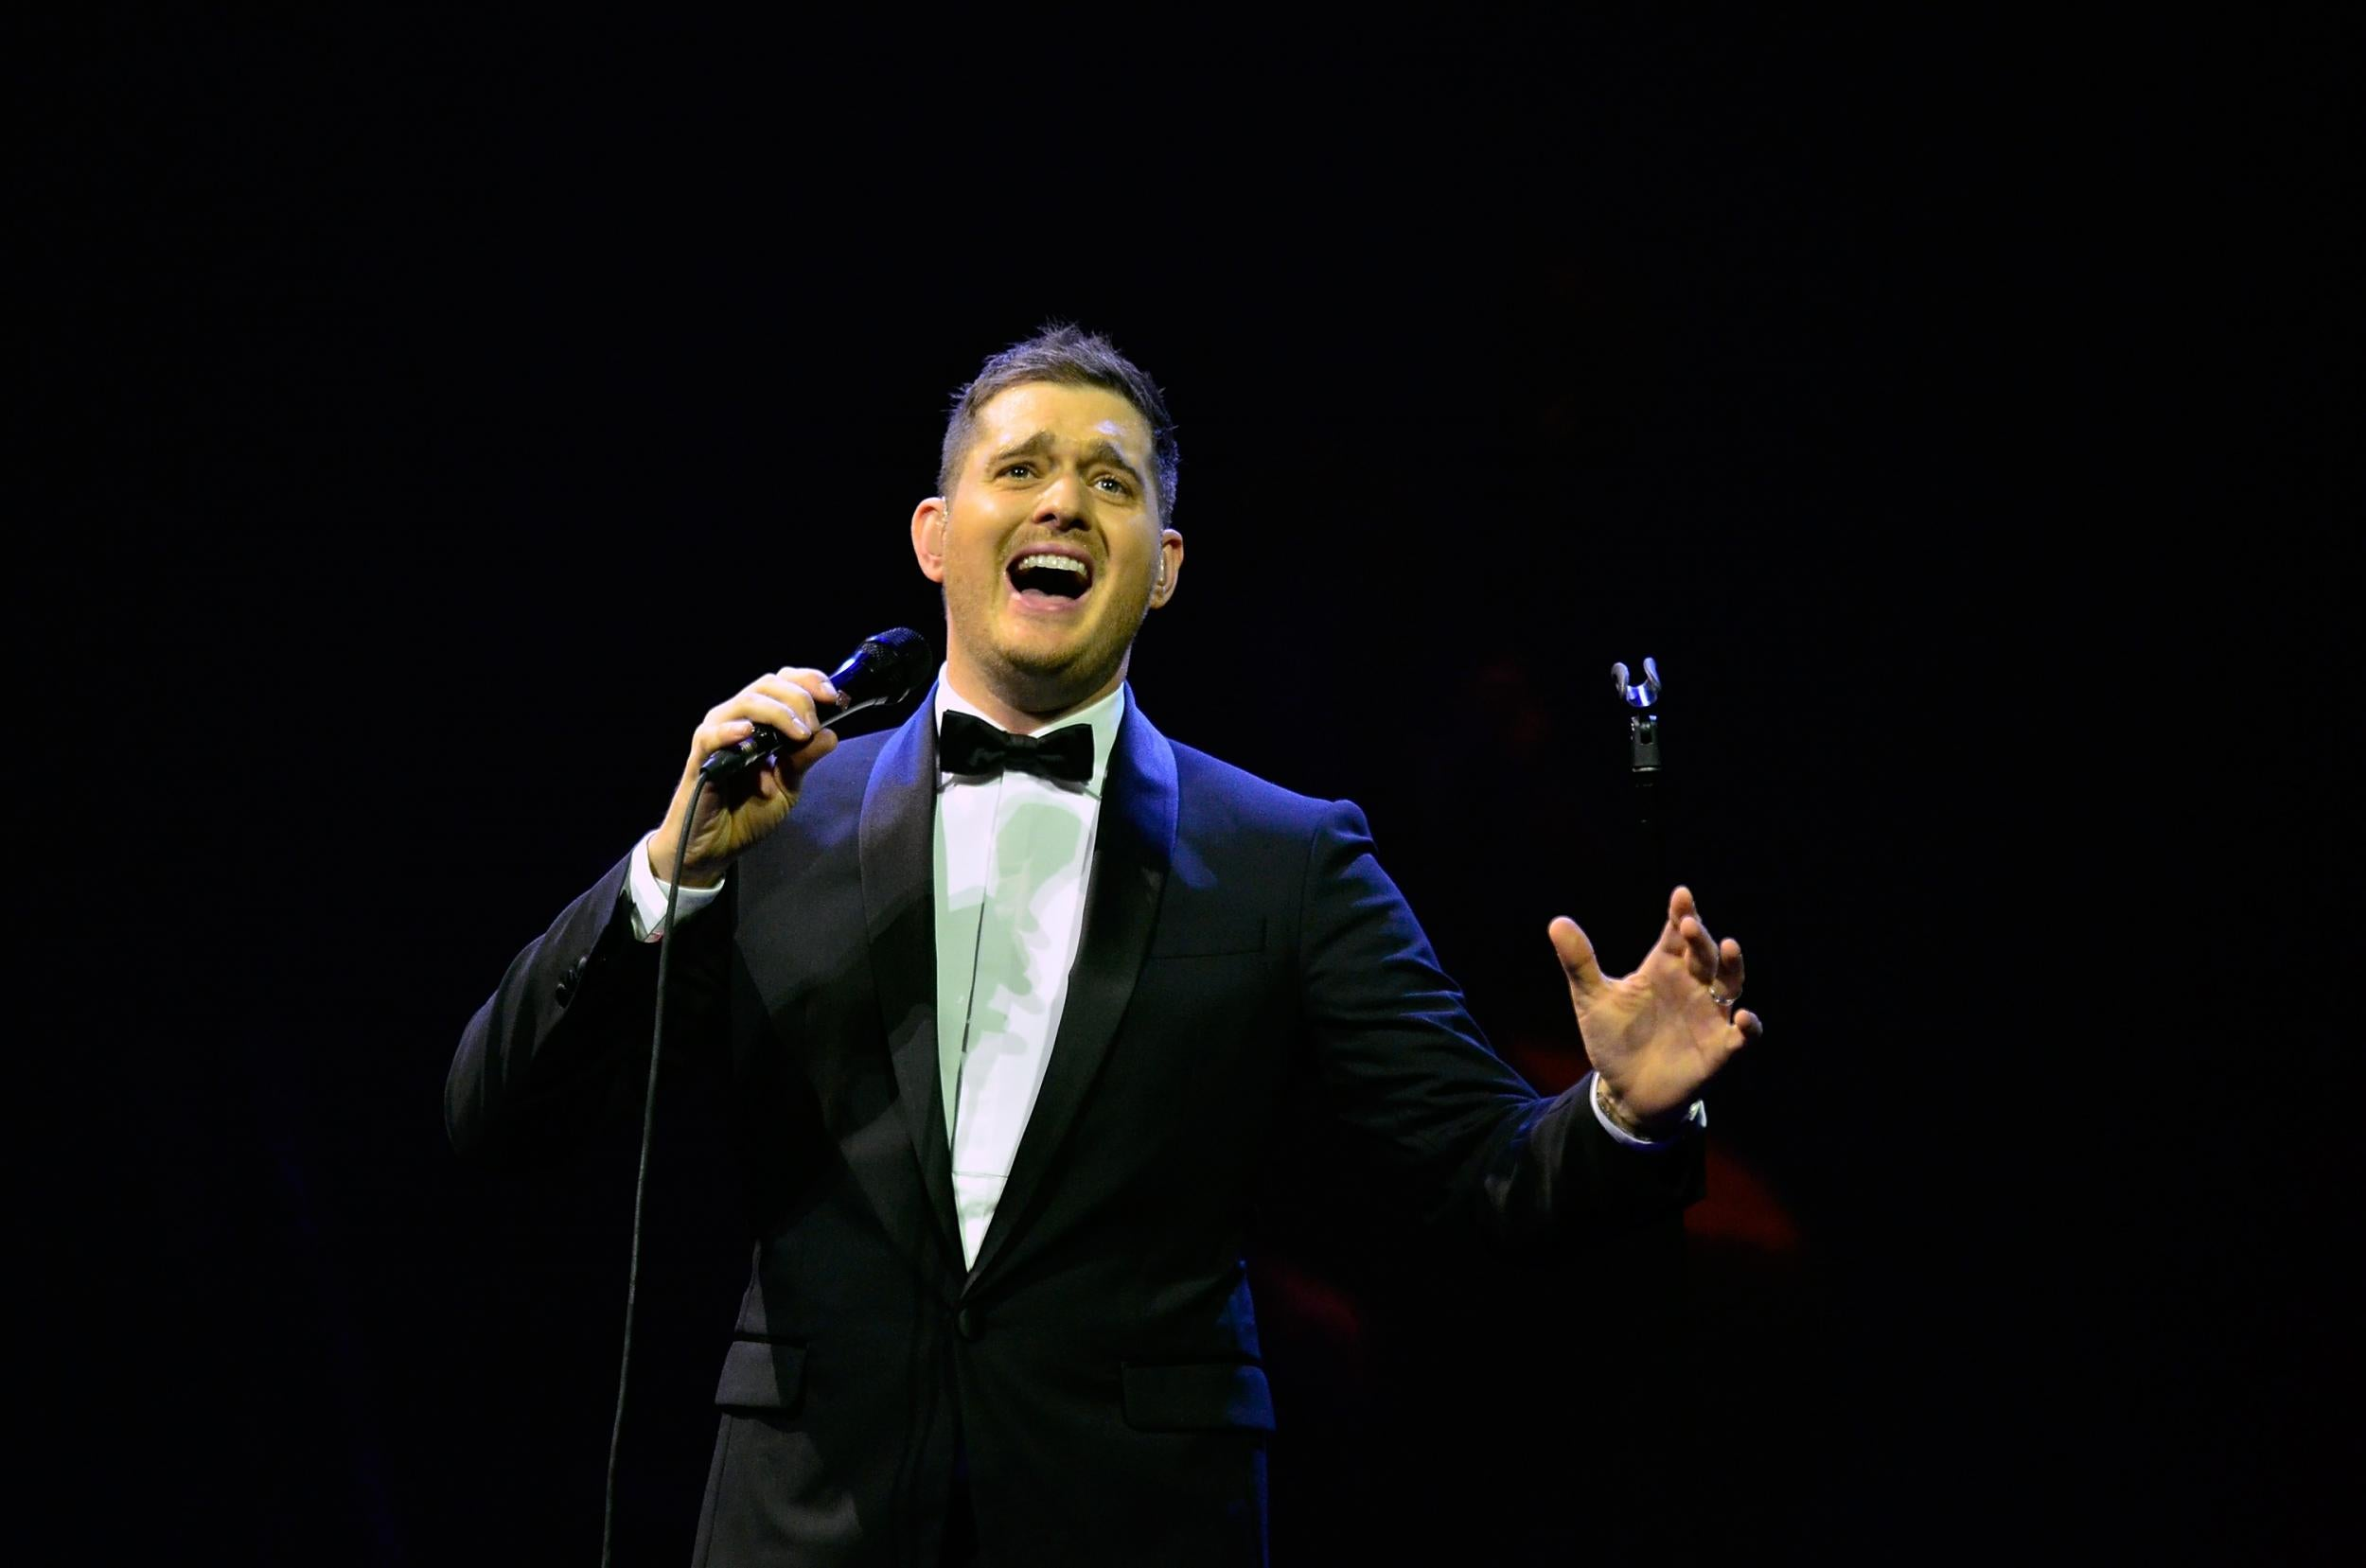 michael buble has announced a uk tour heres how to get tickets